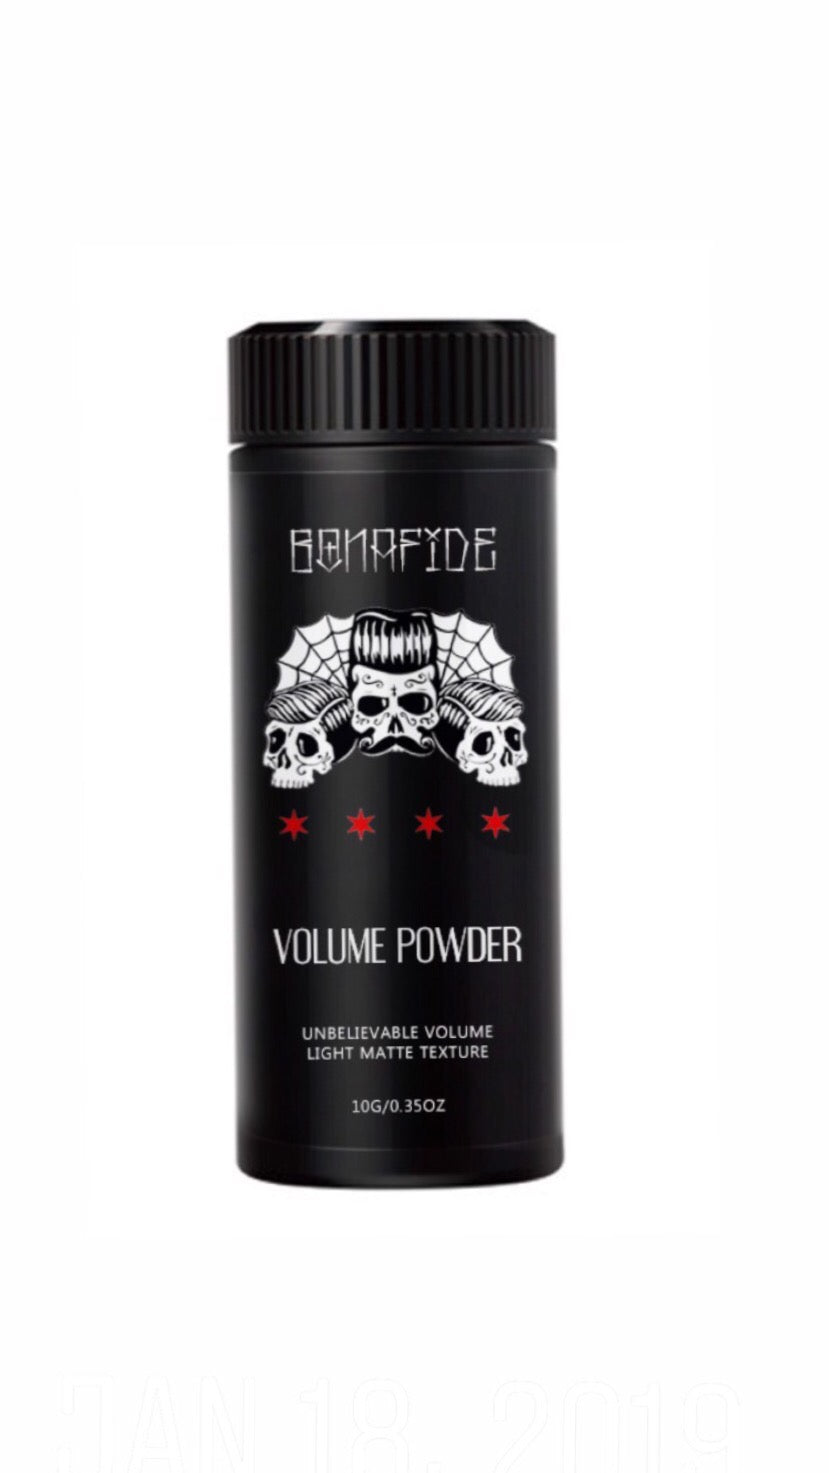 ROCKSTAR BONAFIDE VOLUME POWDER